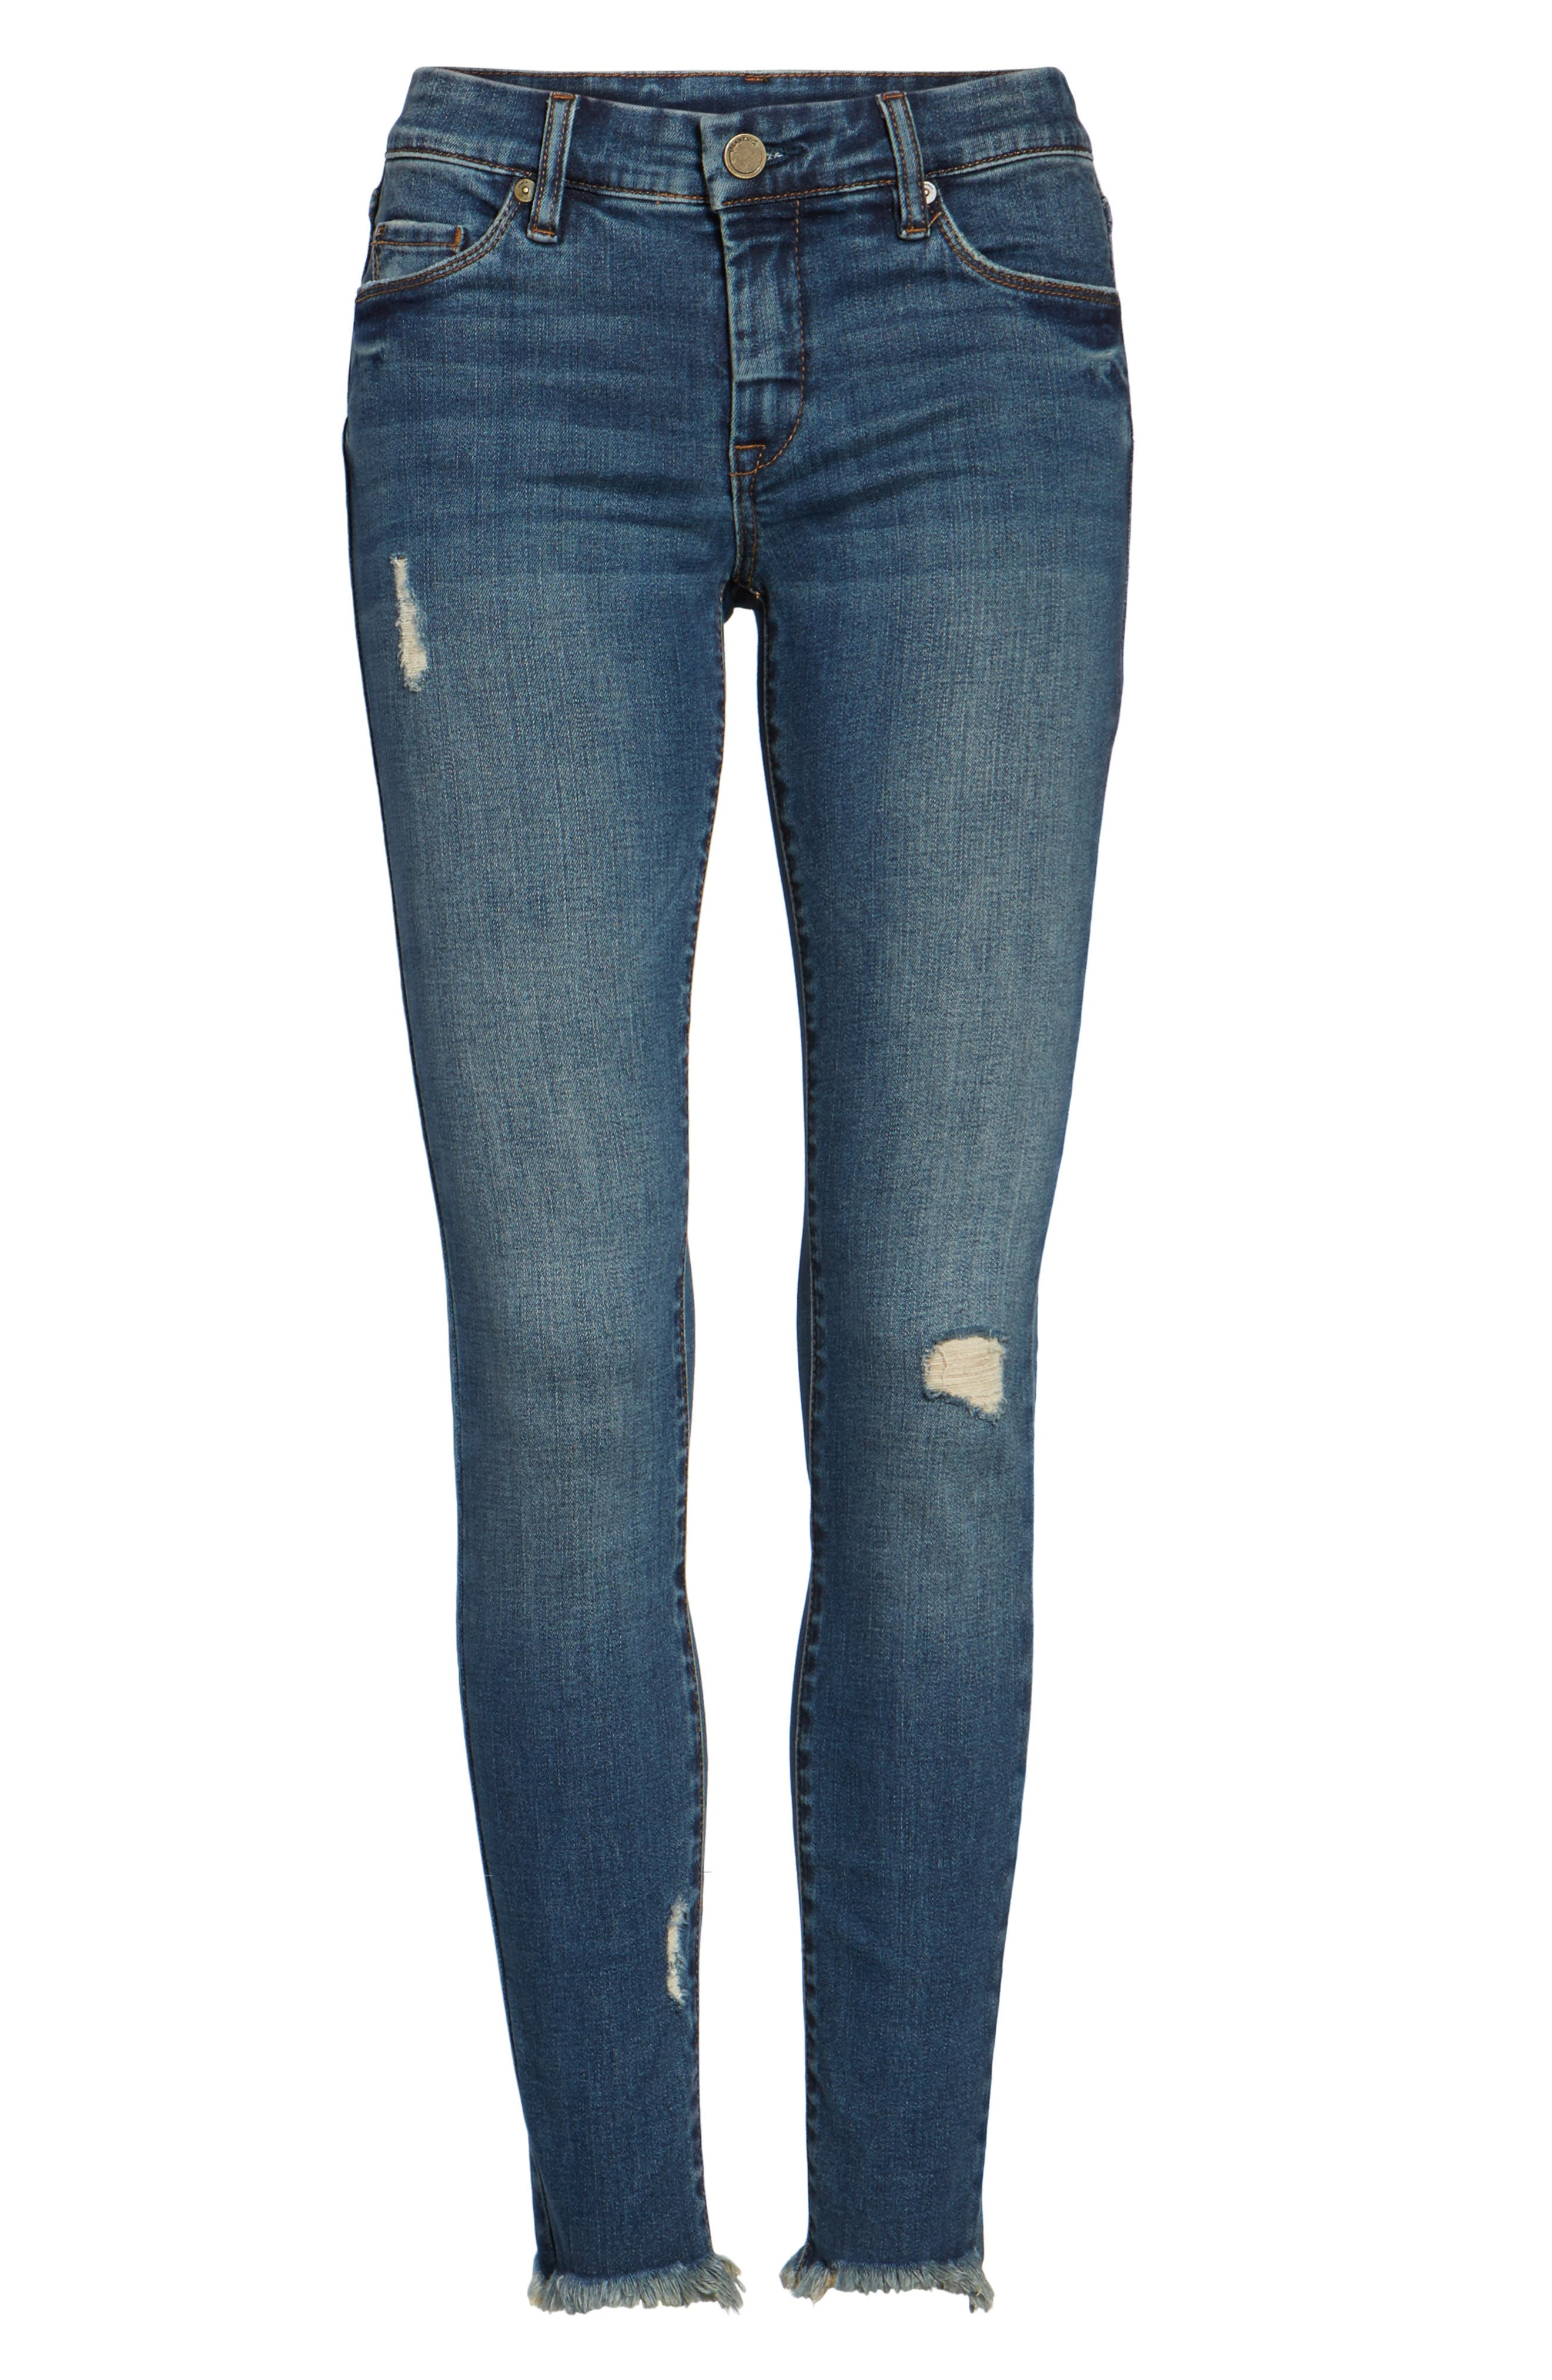 Skinny Ankle Jeans,                             Alternate thumbnail 6, color,                             400